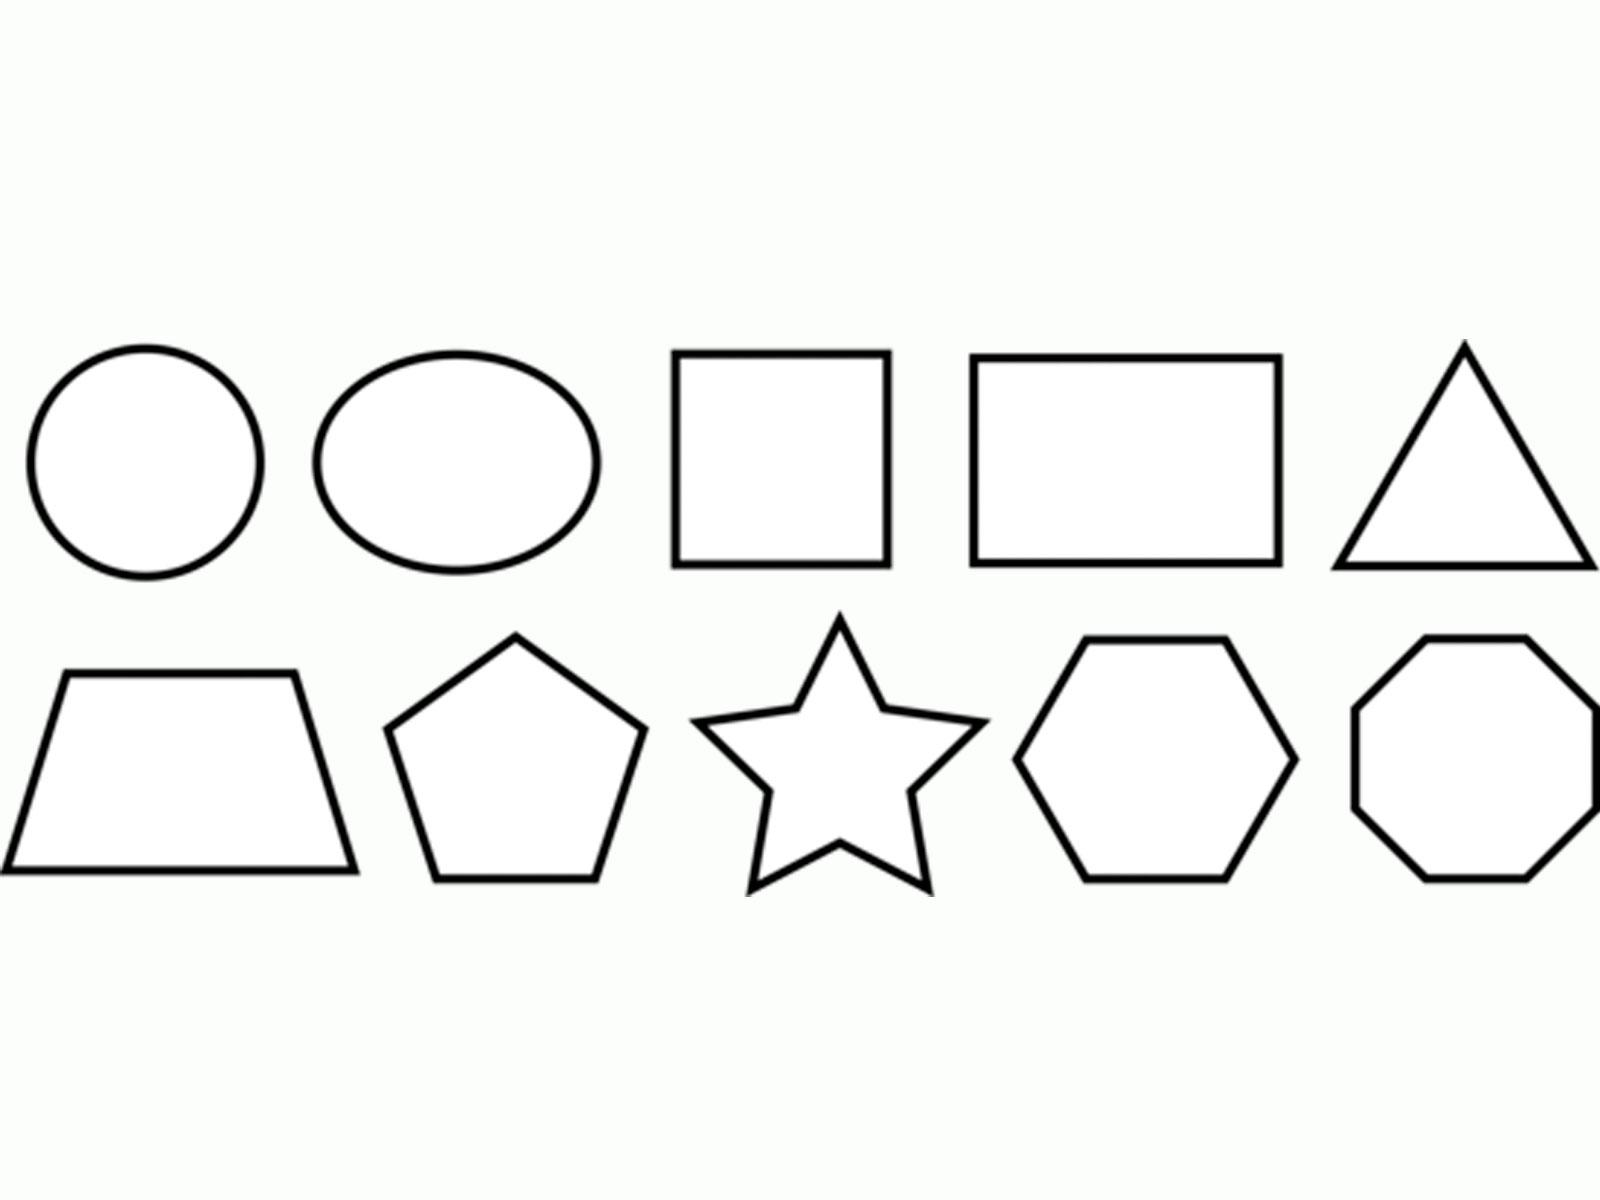 Coloring geometric shapes made of paper geometric shapes templates for cutting